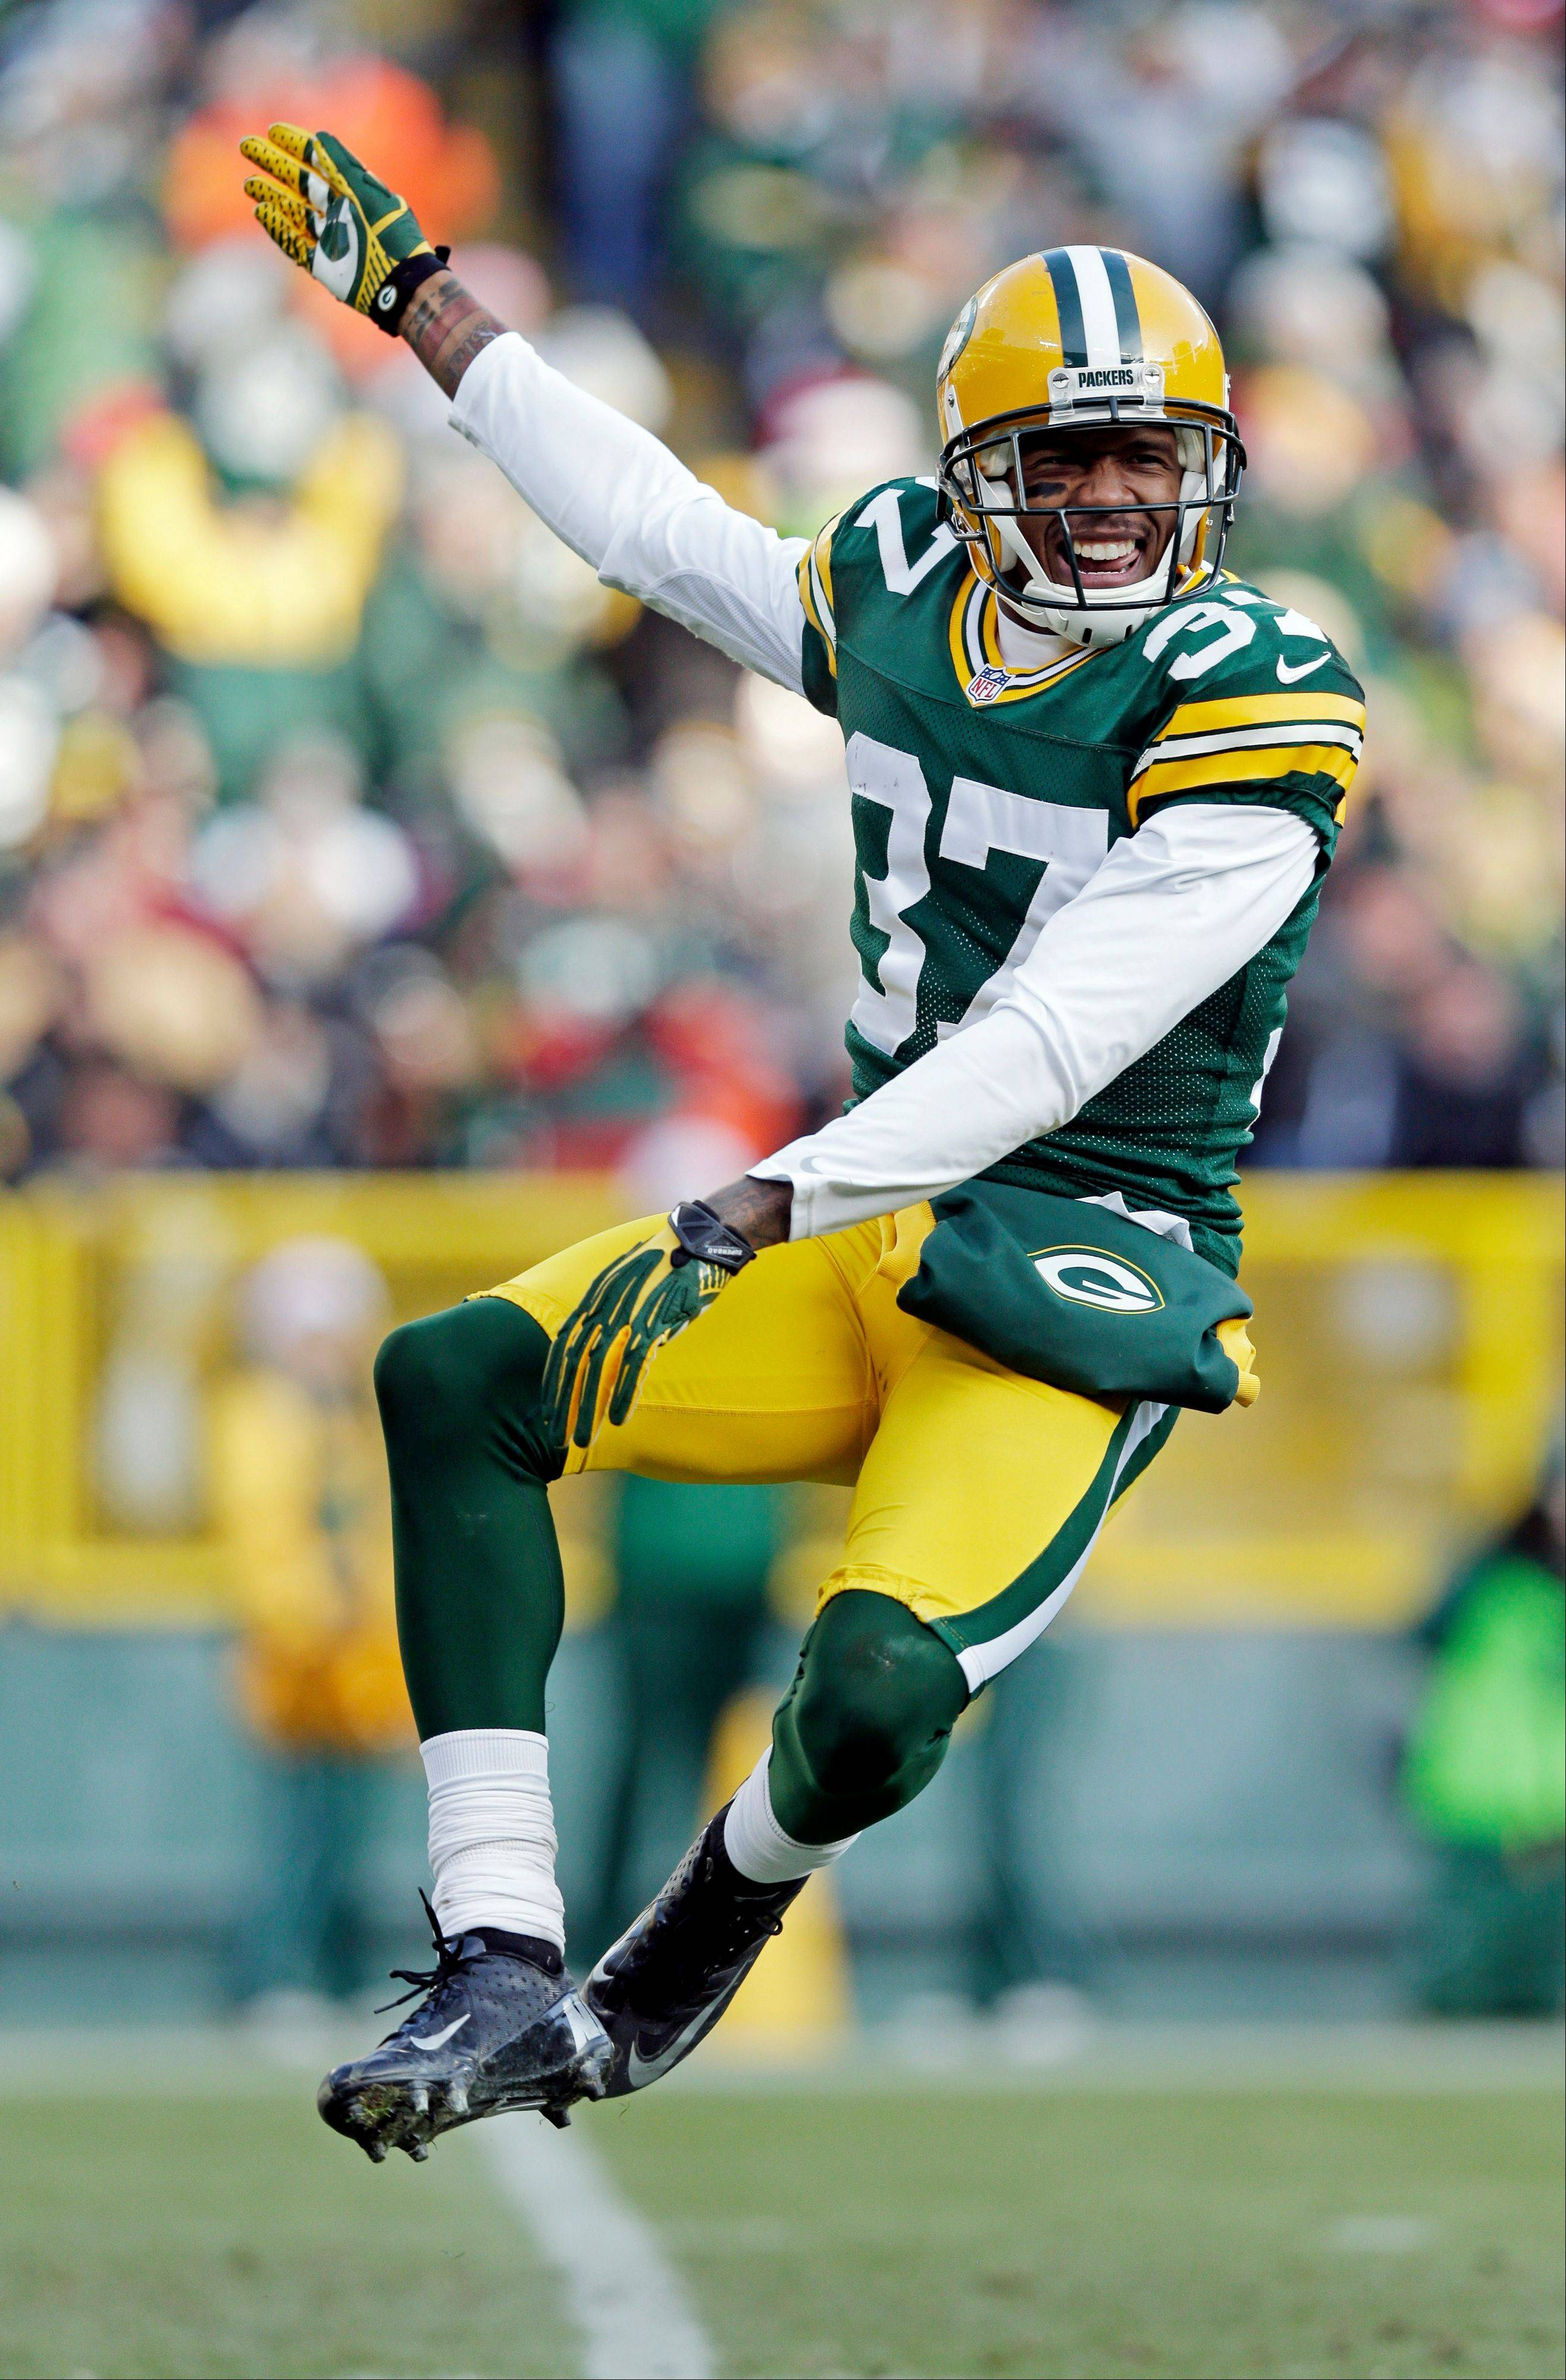 Green Bay Packers' Sam Shields reacts after sacking Tennessee Titans quarterback Jake Locker during the second half of an NFL football game Sunday, Dec. 23, 2012, in Green Bay, Wis.